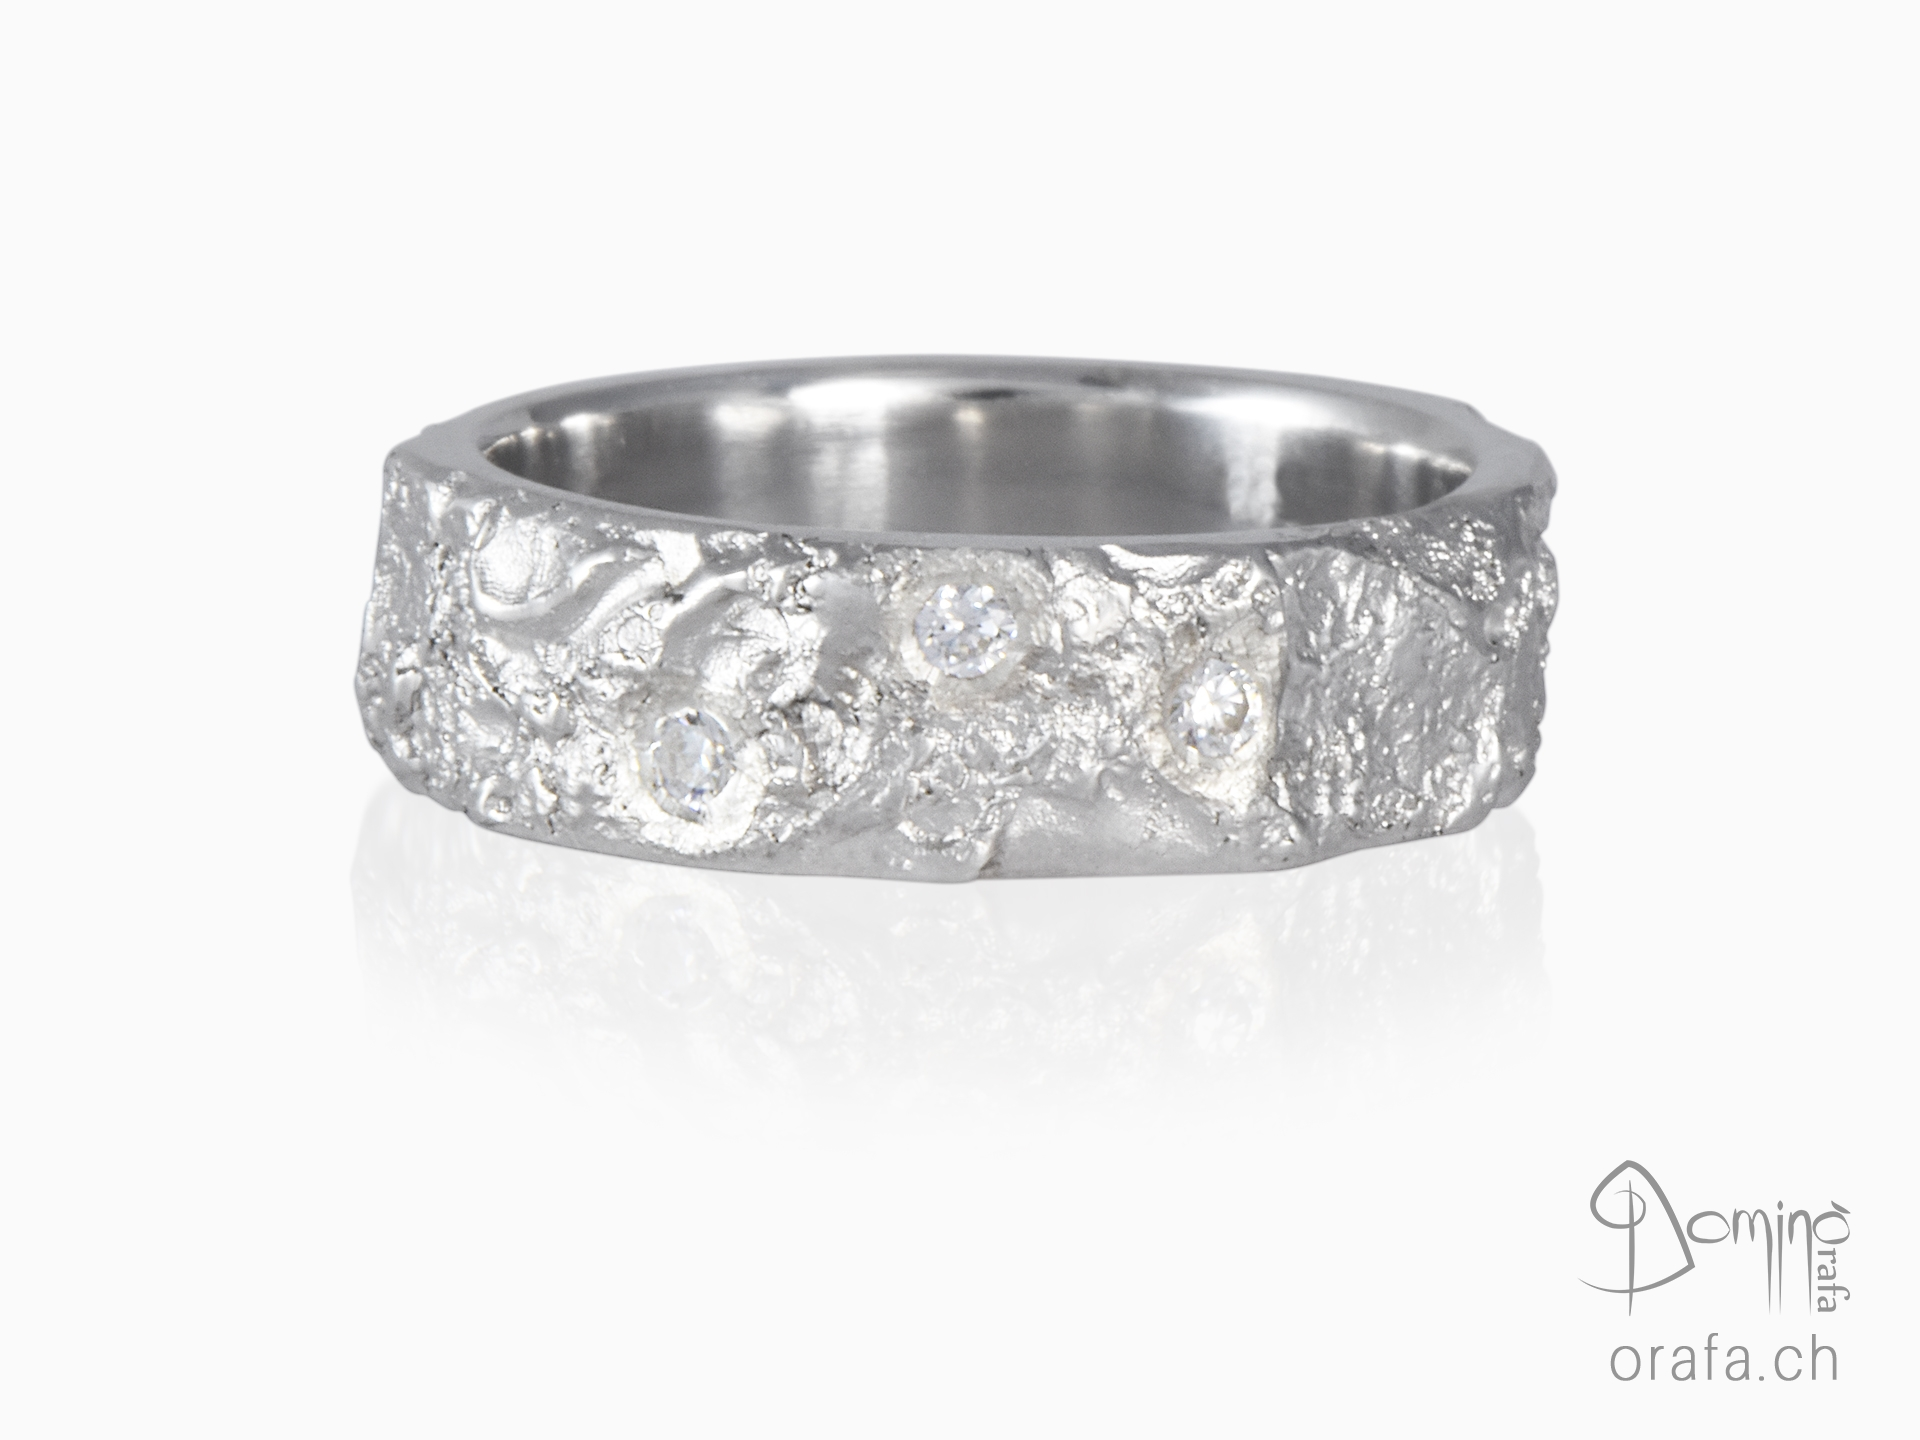 Oceano ring with diamonds